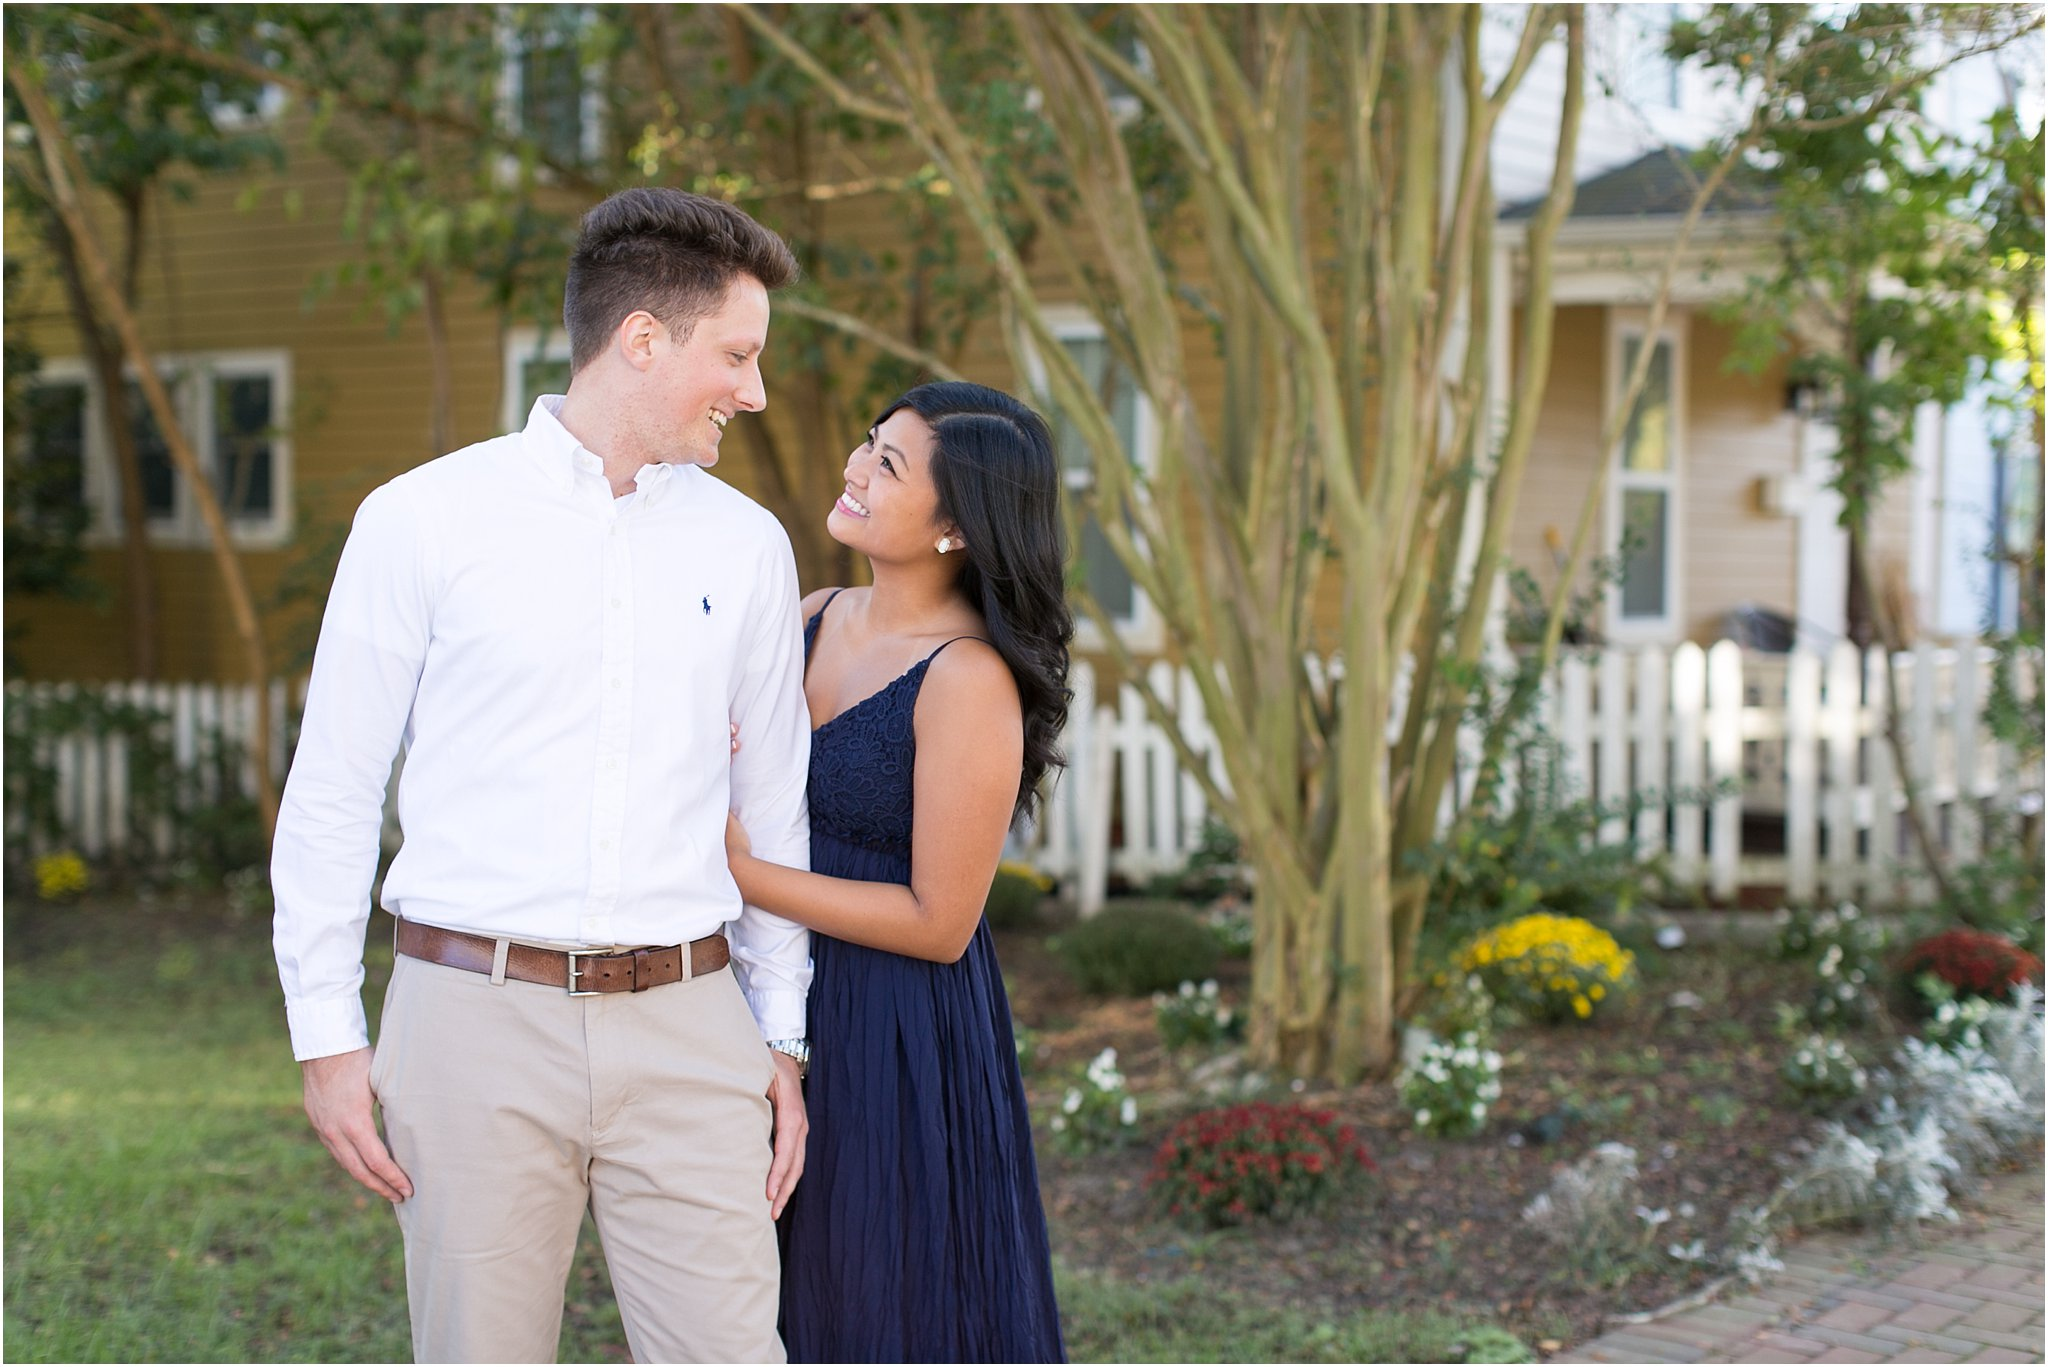 jessica_ryan_photography_virginia_smithfield_historical_downtown_engagement_portraits_candid_authentic_3695